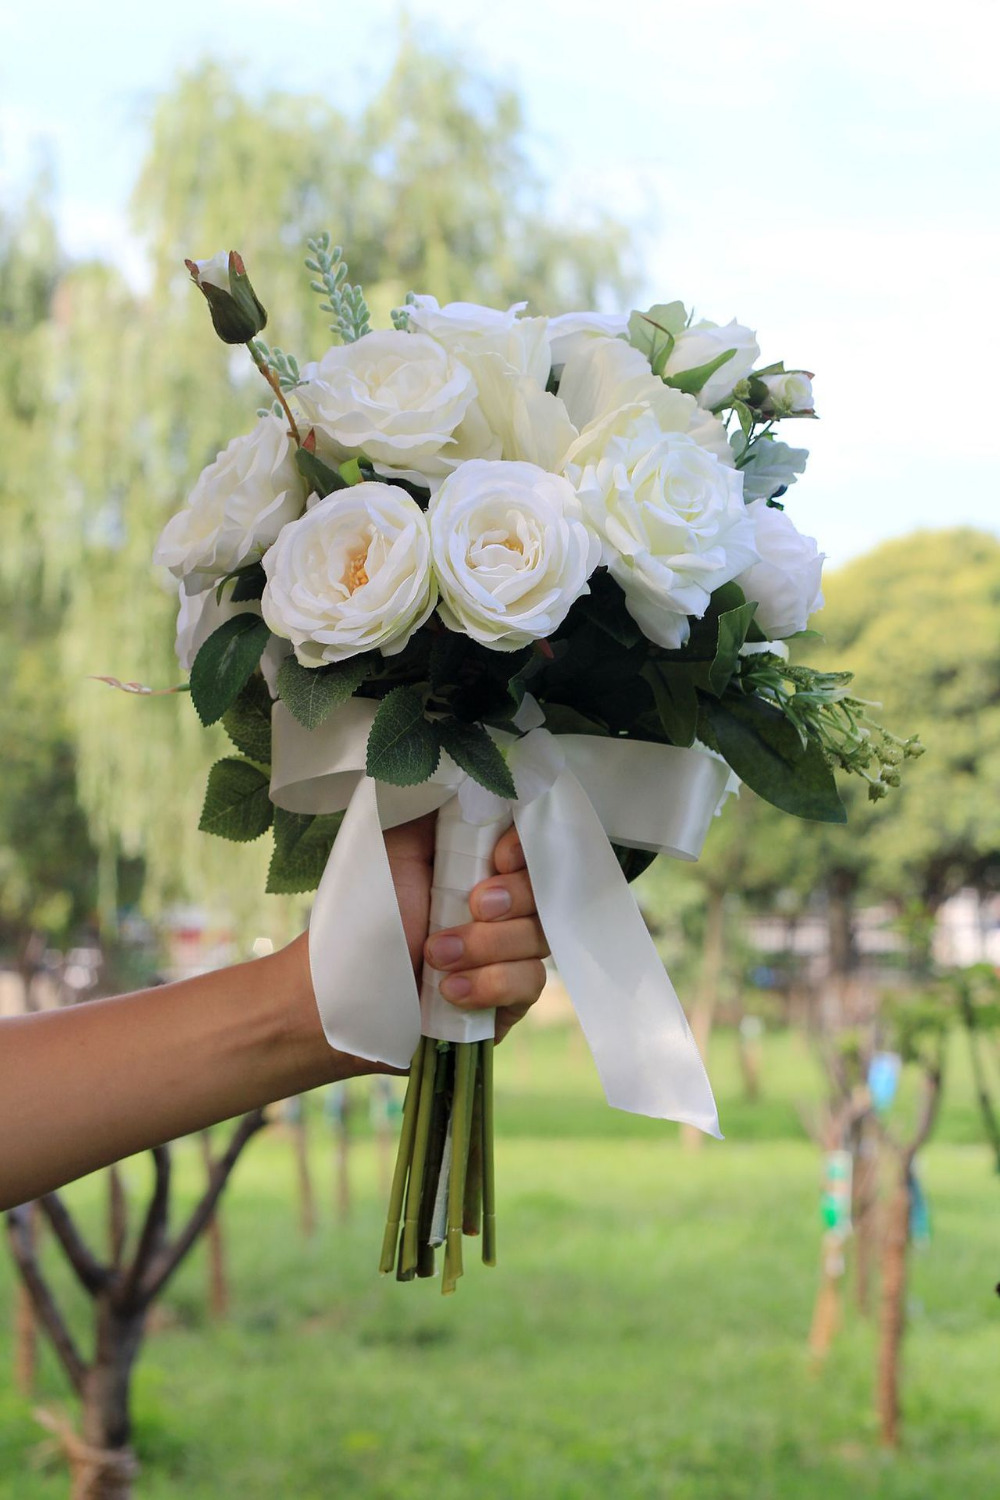 Studio Wedding Photo Simulation Holding Flowers Wedding Bouquets Women Country style Bridal Party Gifts Artificial flowers 2018